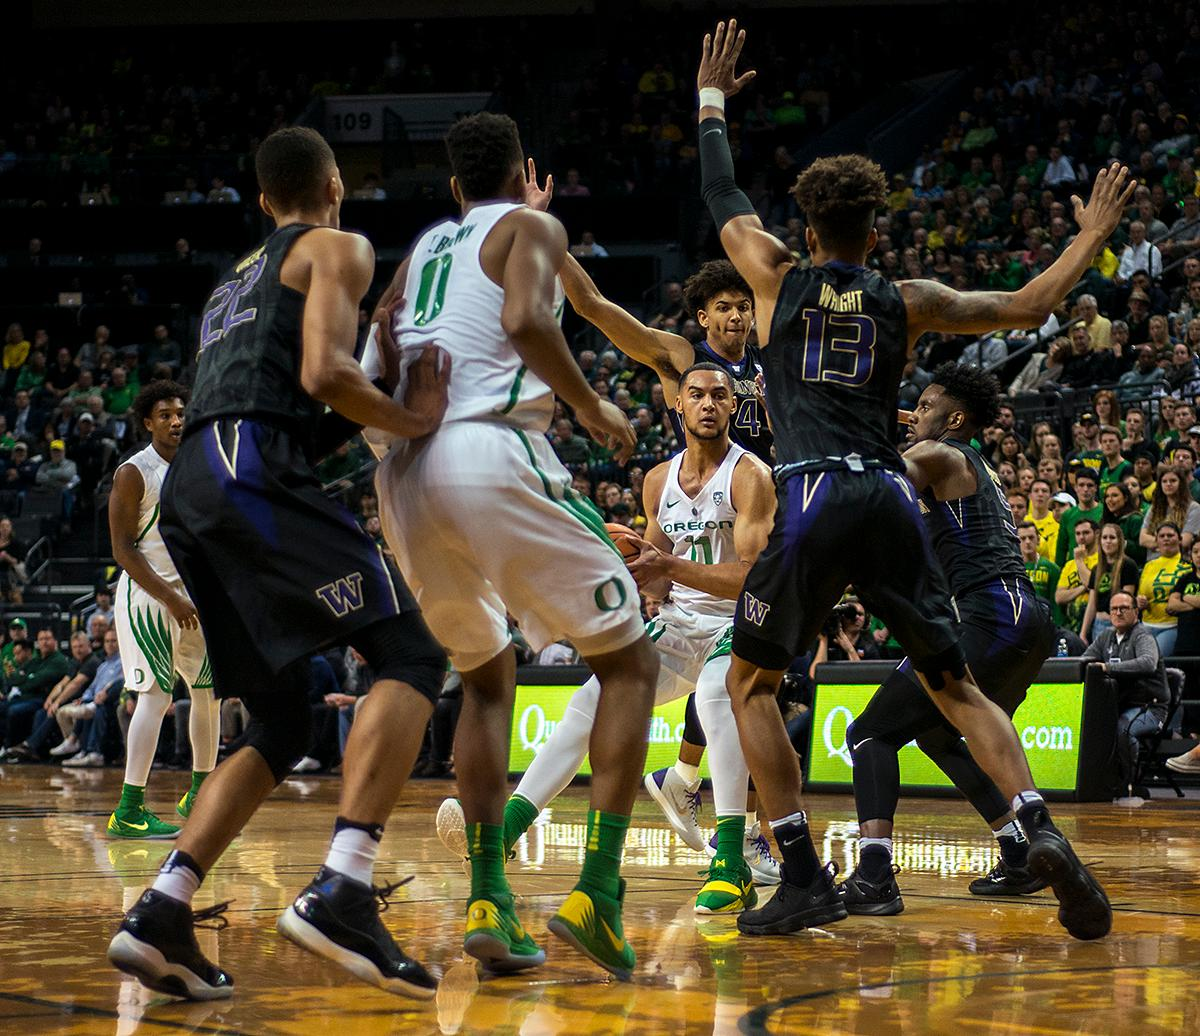 Oregon Ducks forward Keith Smith (#11) is surrounded by the Huskies defense as his team tries to continue the play. The Oregon Ducks defeated the Washington Huskies 65-40 on Thursday night at Matthew Knight Arena. Troy Brown, Junior led Oregon with 21 points to match his career high, and Kenny Wooten set a career best of seven shots blocked. The Ducks now stand 6-5 in the Pac-12 conference play. Photo by Abigail Winn, Oregon News Lab